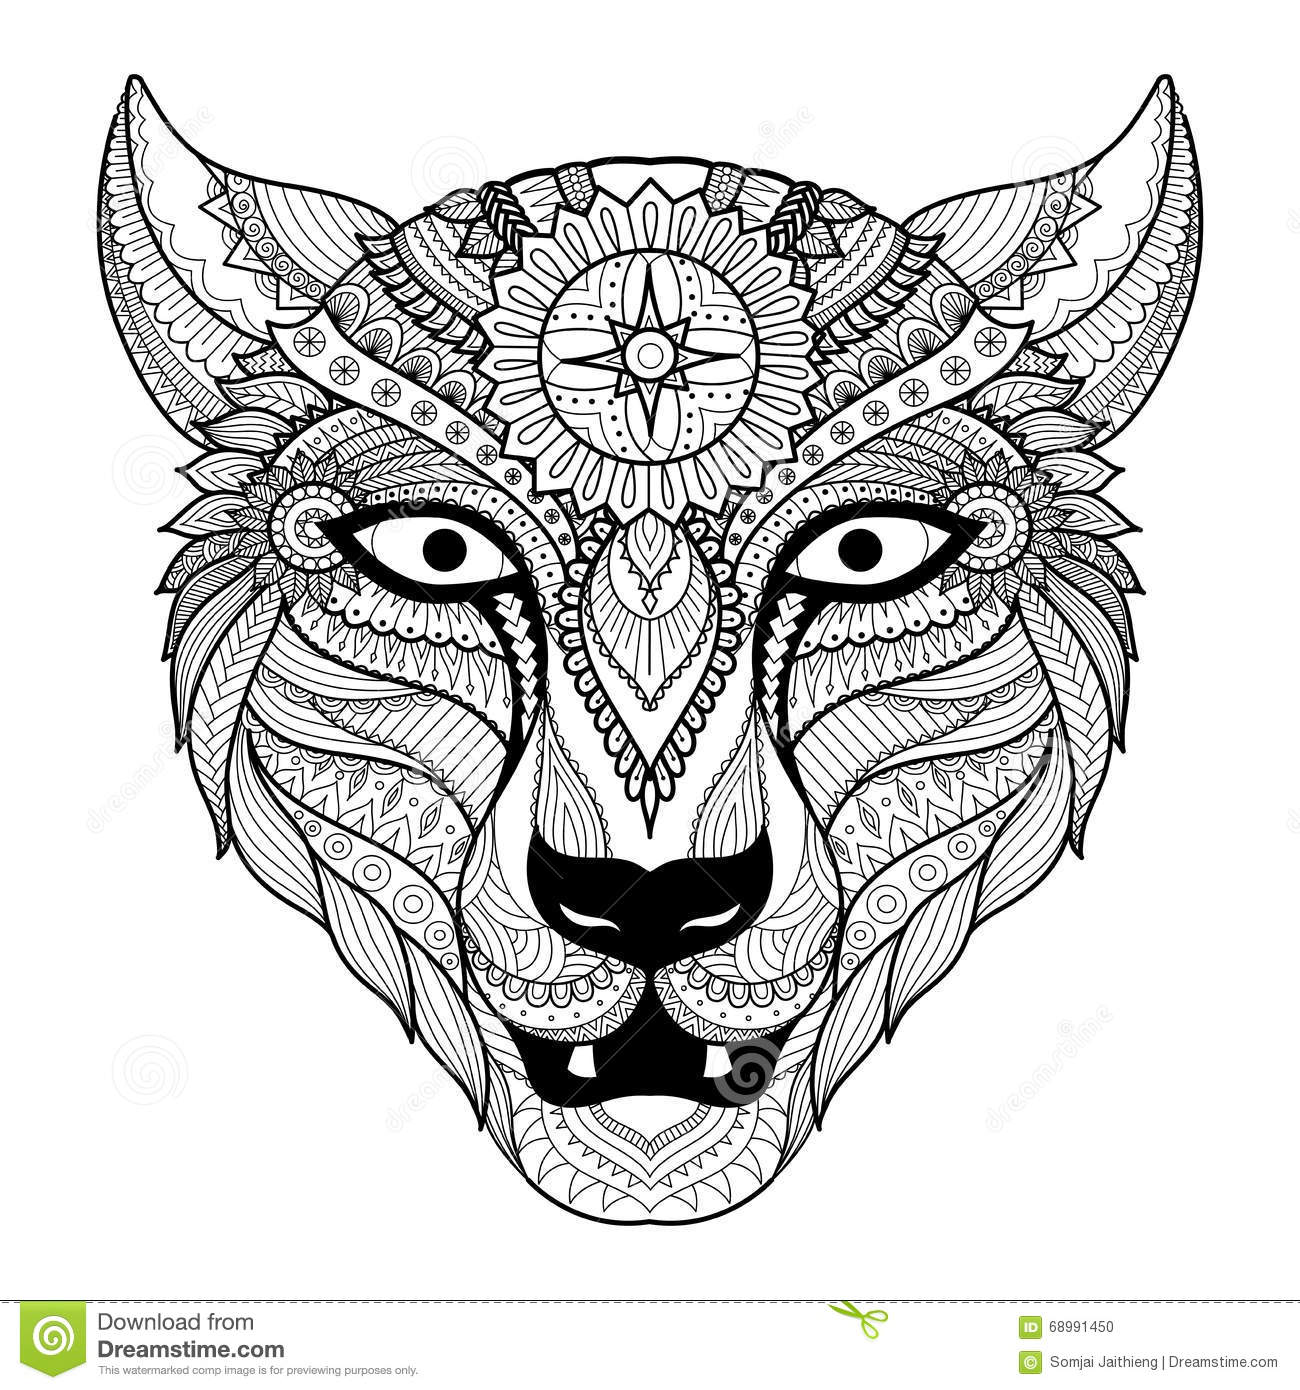 Leopard Line Art Design For Coloring Book For Adult, Tattoo, T.